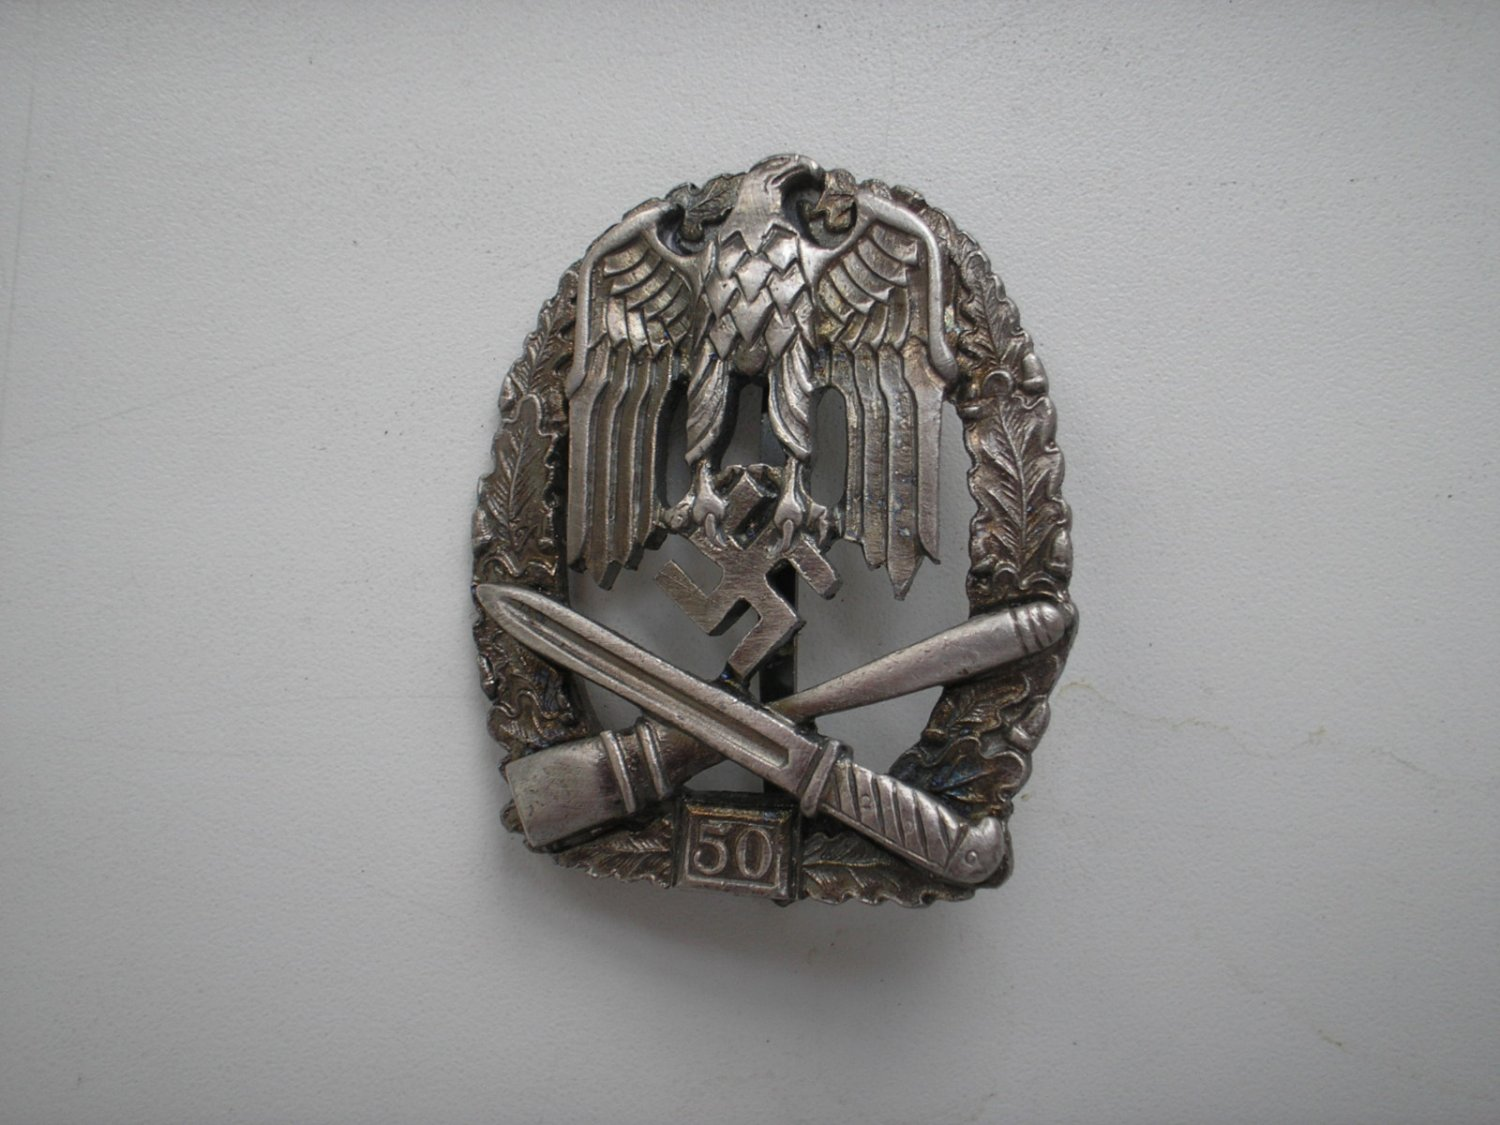 WWII THE GERMAN BADGE GENERAL ASSAULT 50